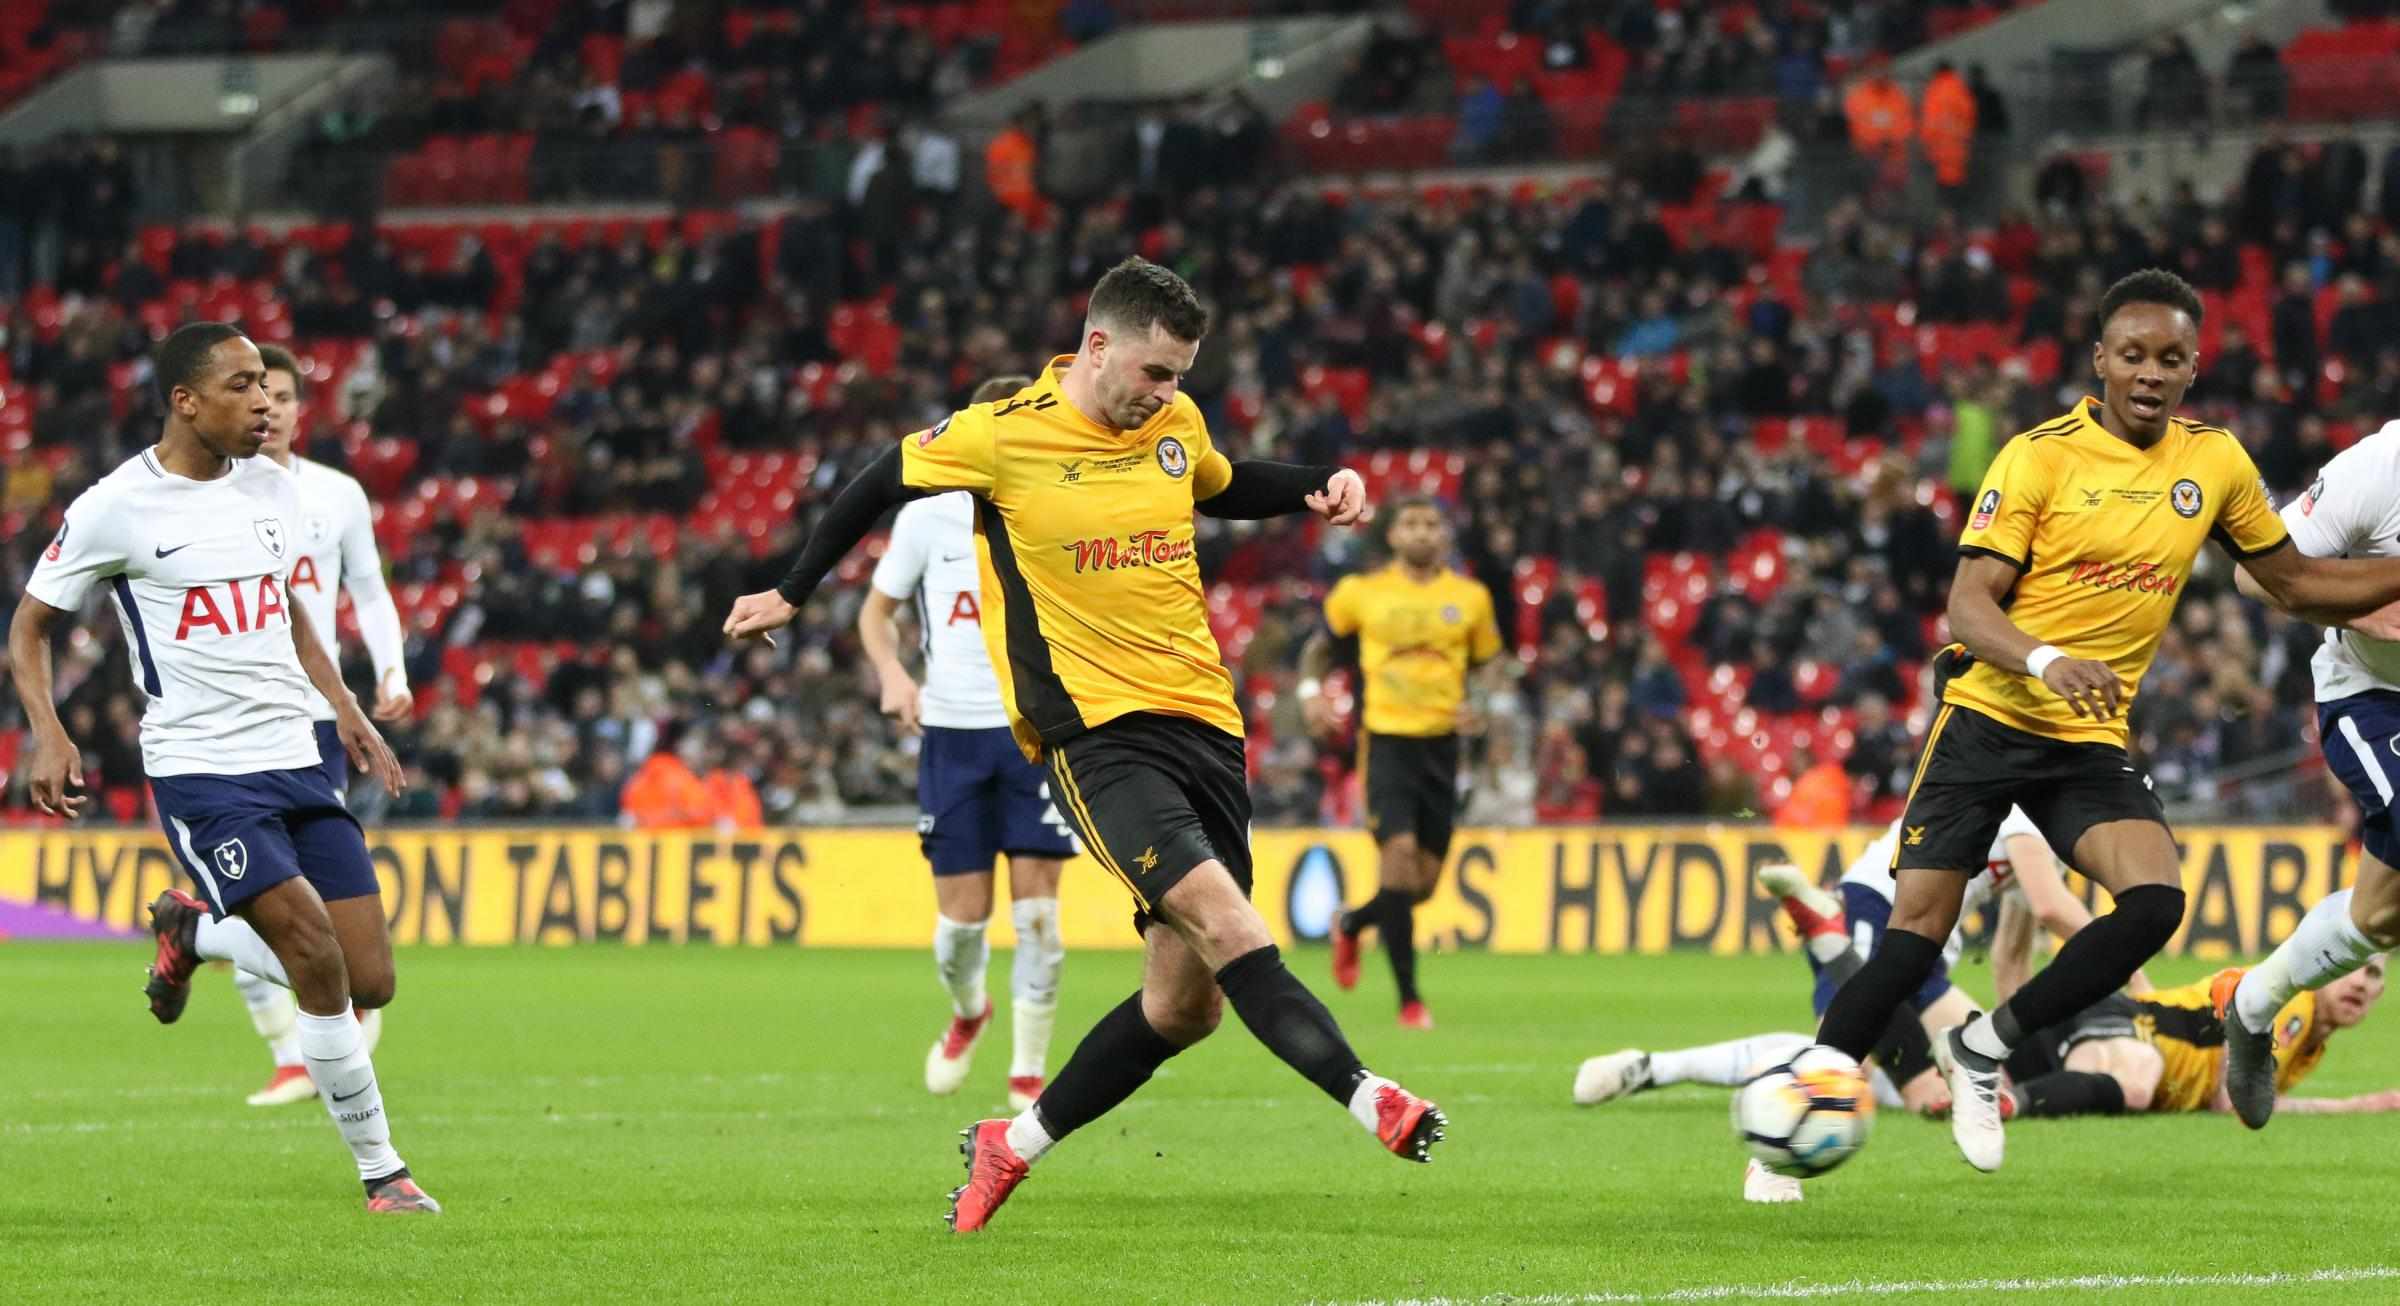 THE ONE THAT GOT AWAY: Padraig Amond shoots for goal at the end of County's 2-0 defeta to Spurs at Wembley. Picture: Huw Evans Agency